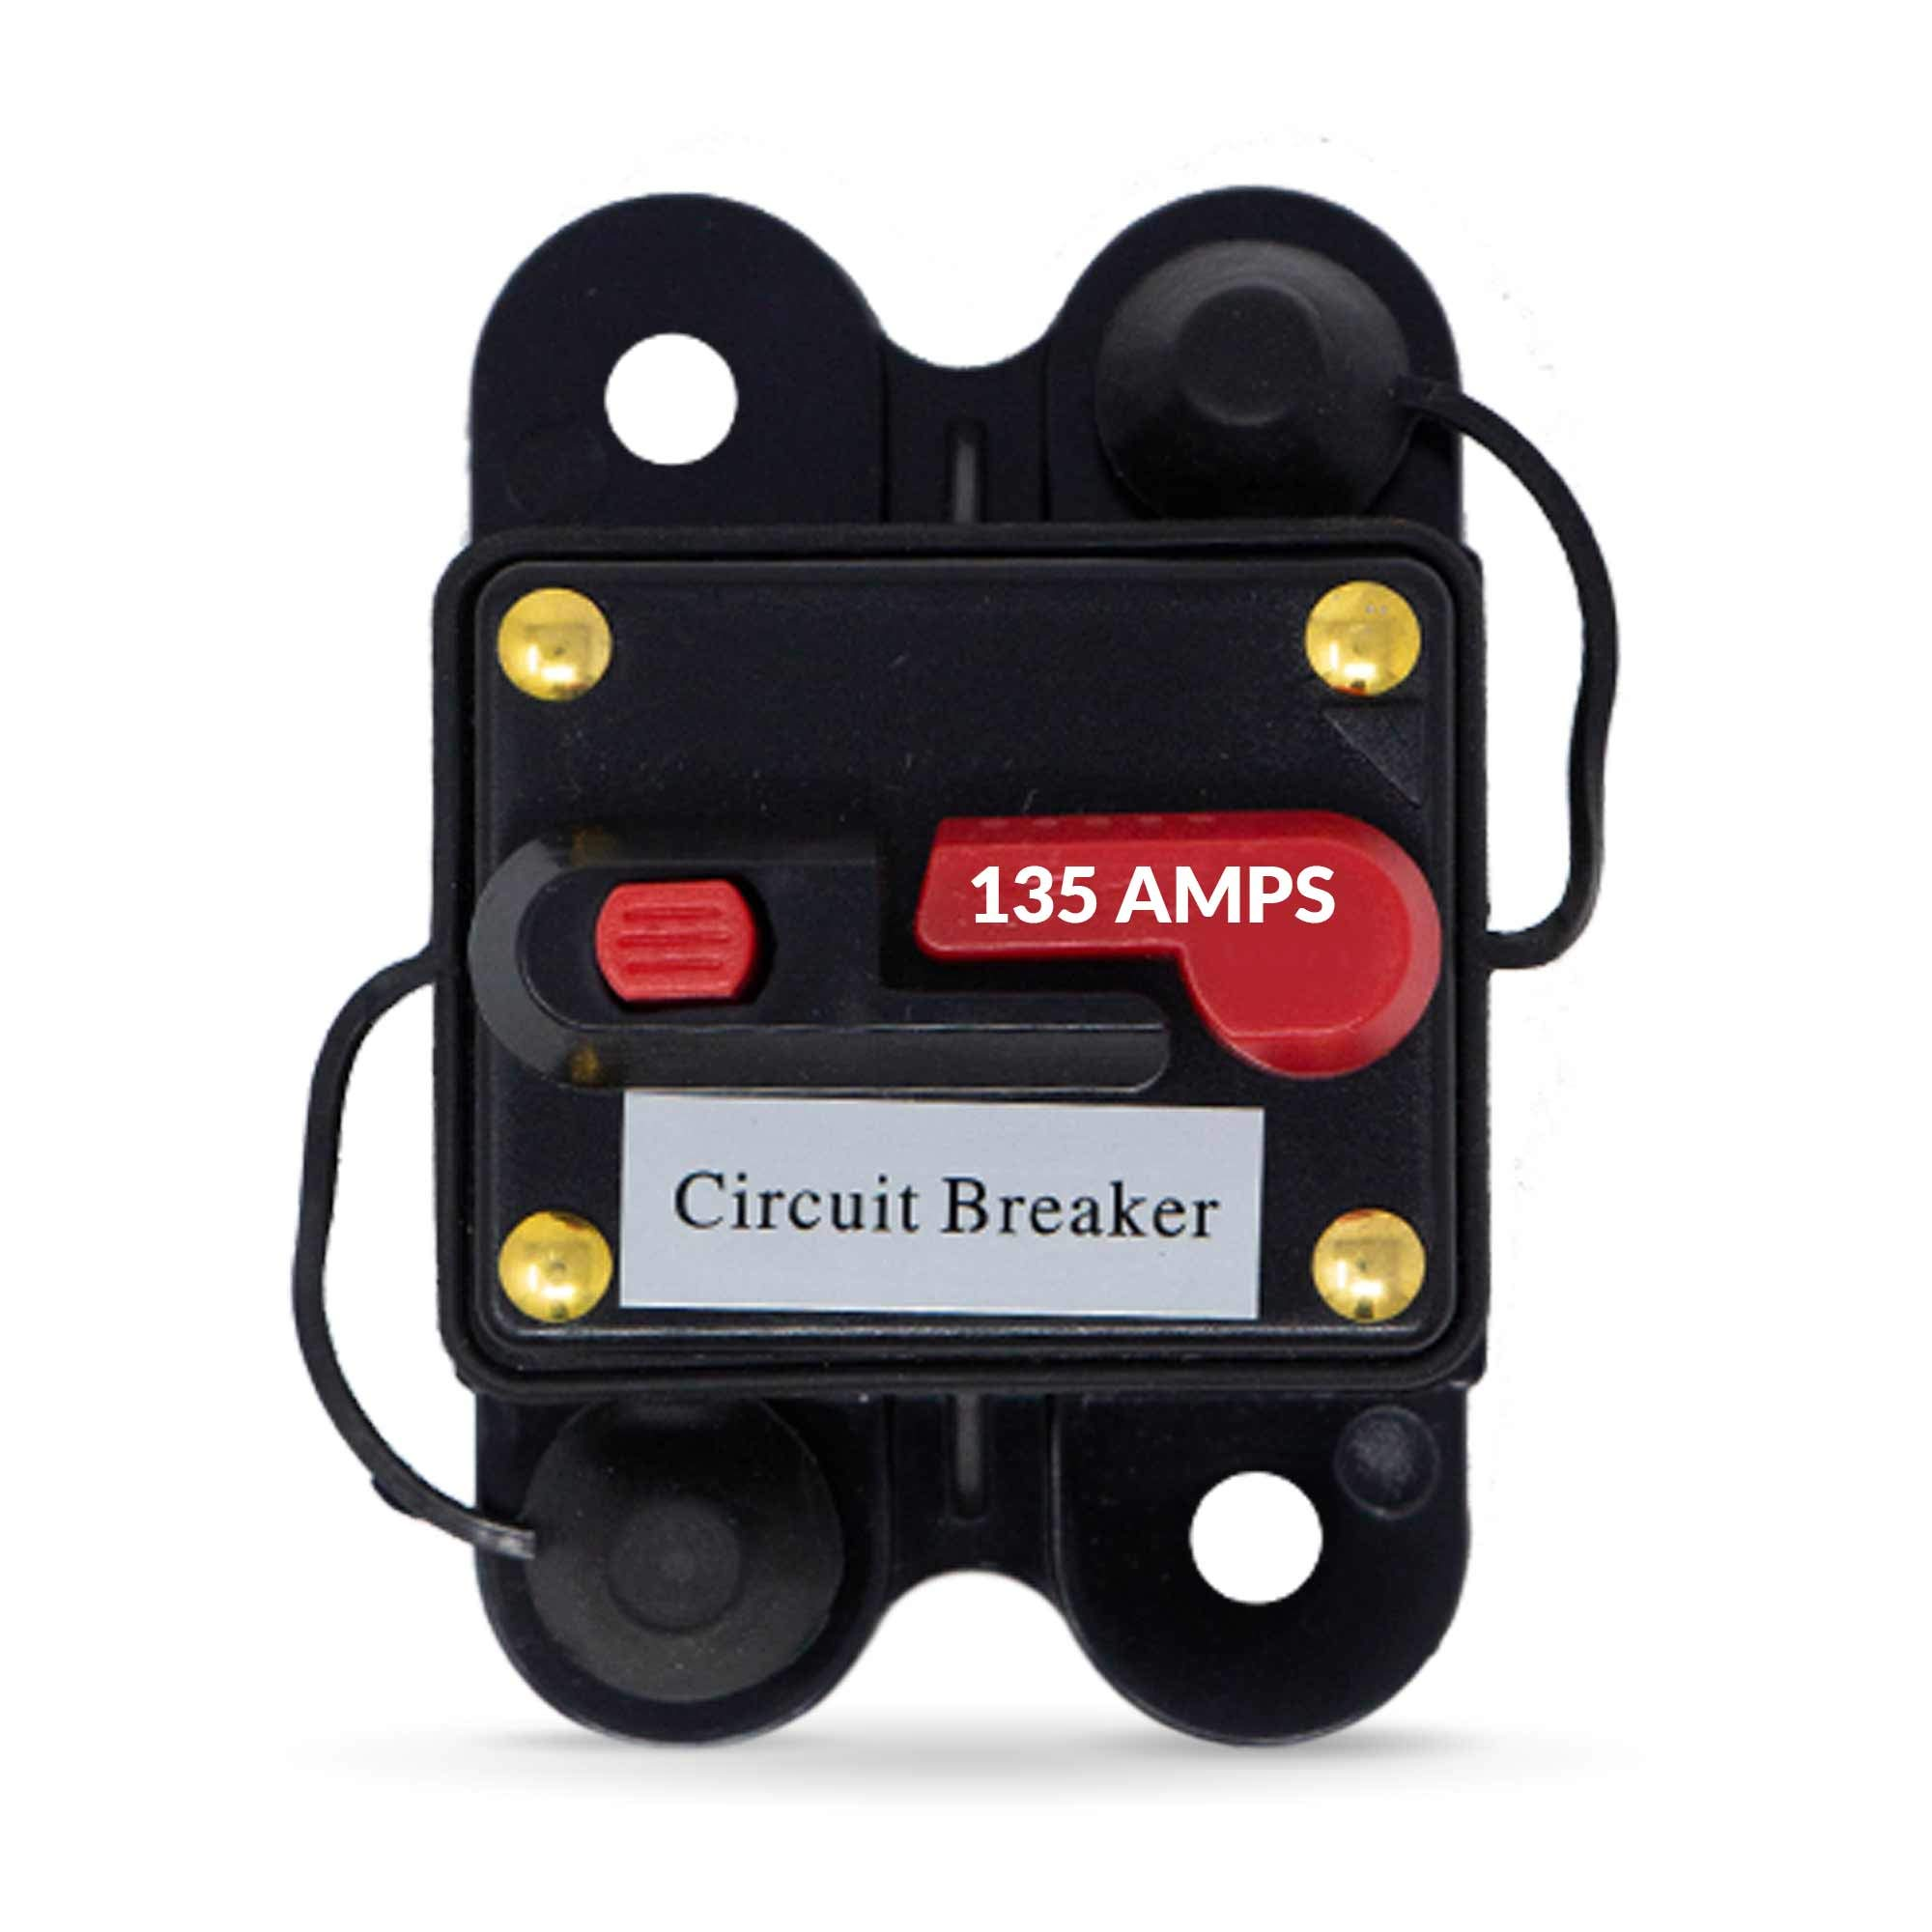 Five Oceans 135 Amp Anchor Windlass Circuit Breaker w/Manual Reset Button, 12V FO-3297 by Five Oceans